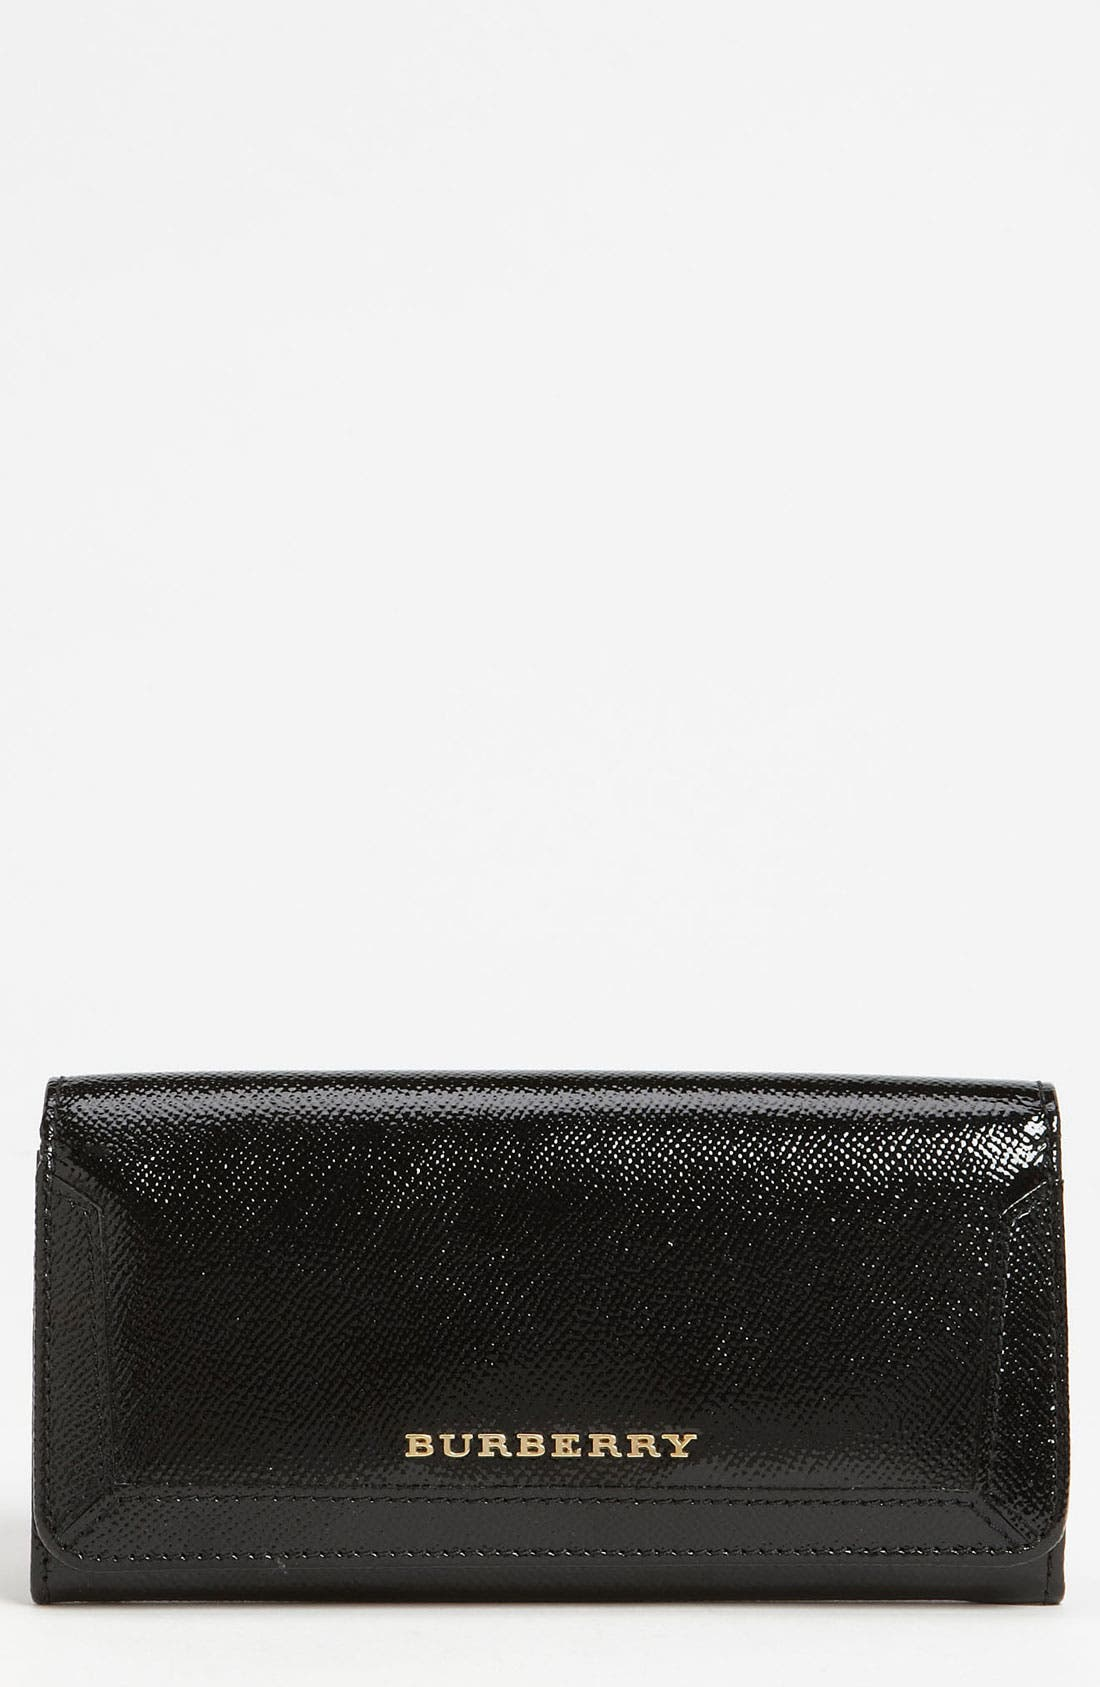 Patent Leather Wallet, Main, color, 001